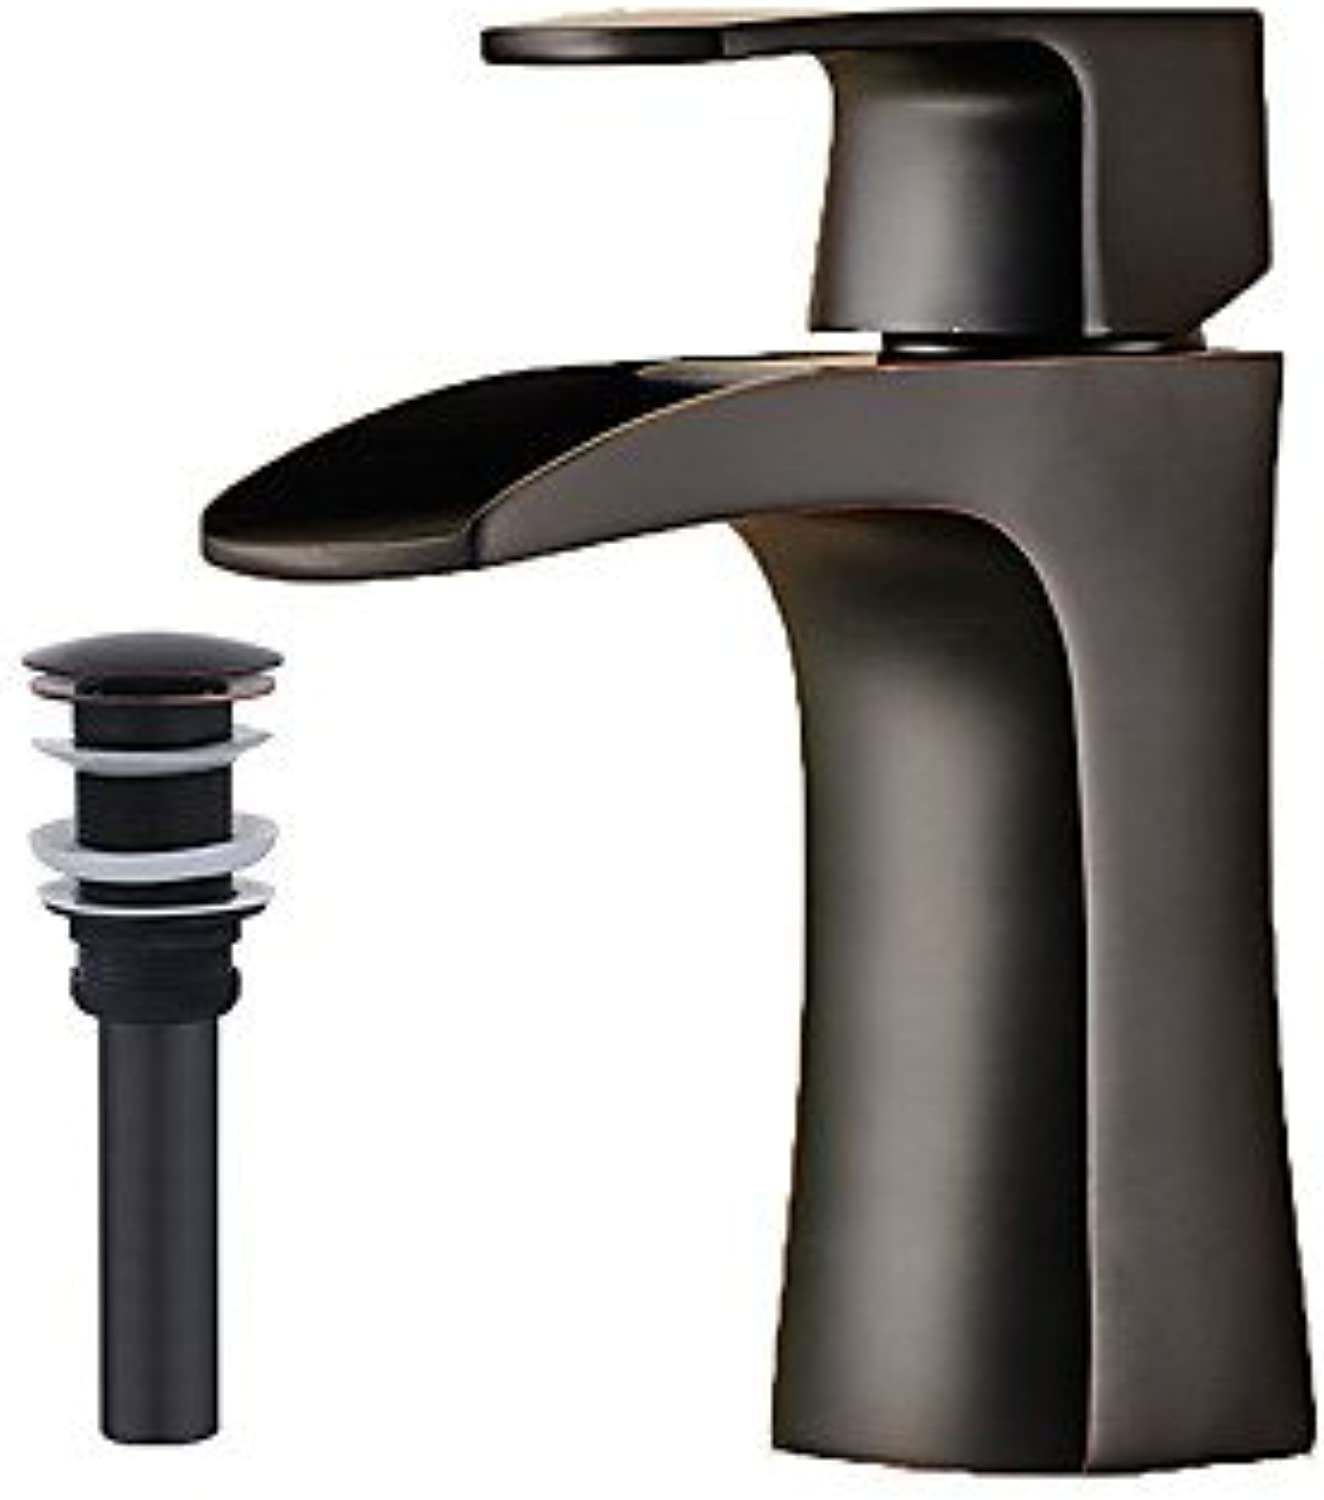 Country Modern Centerset Pre Rinse Widespread withCeramic Valve Single Handle One Hole forNickel Brushed , Bathroom Sink Faucet